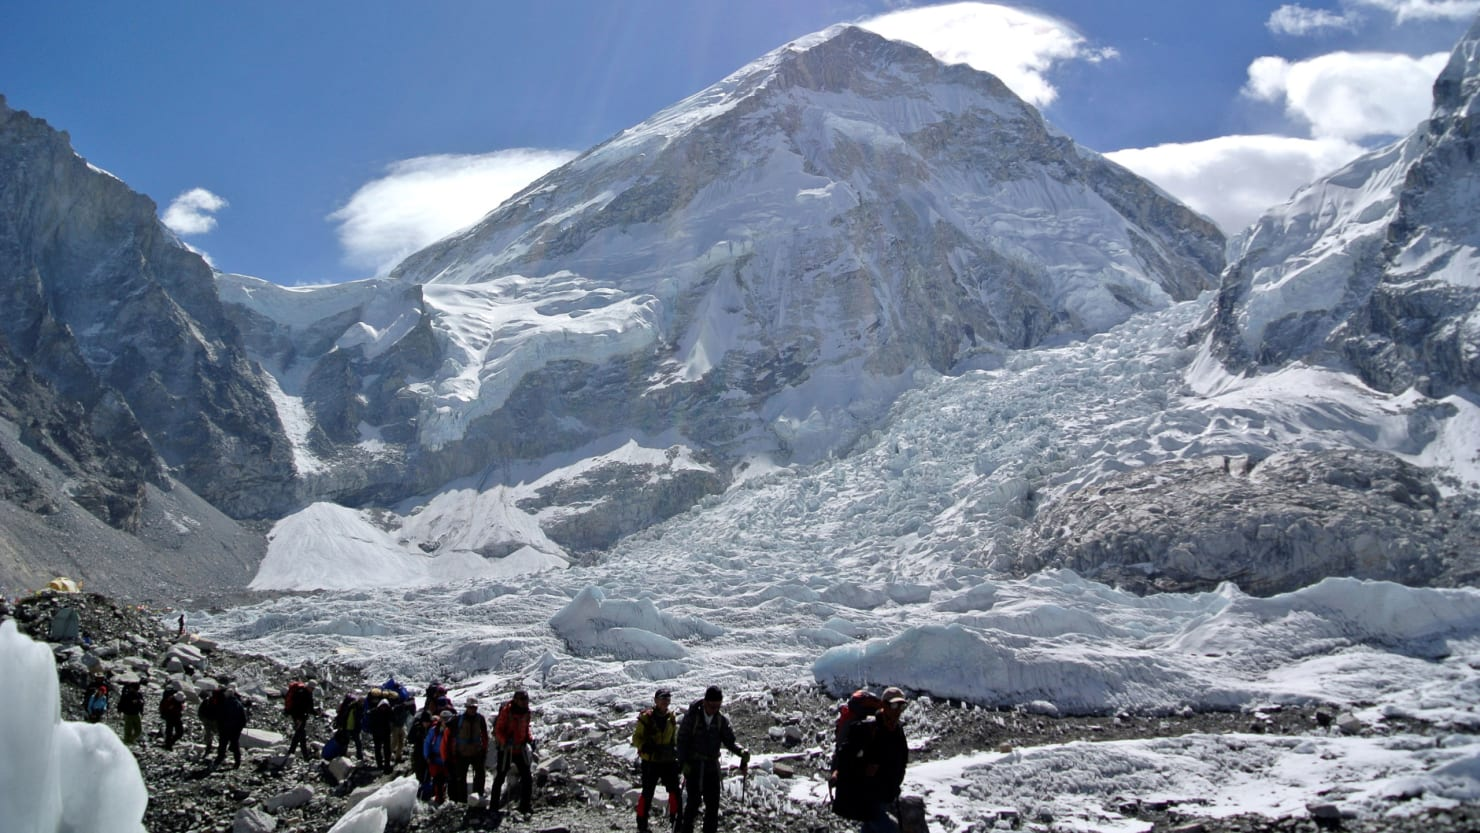 China Closes Everest Base Camp After Human Waste and Trash Piles Up